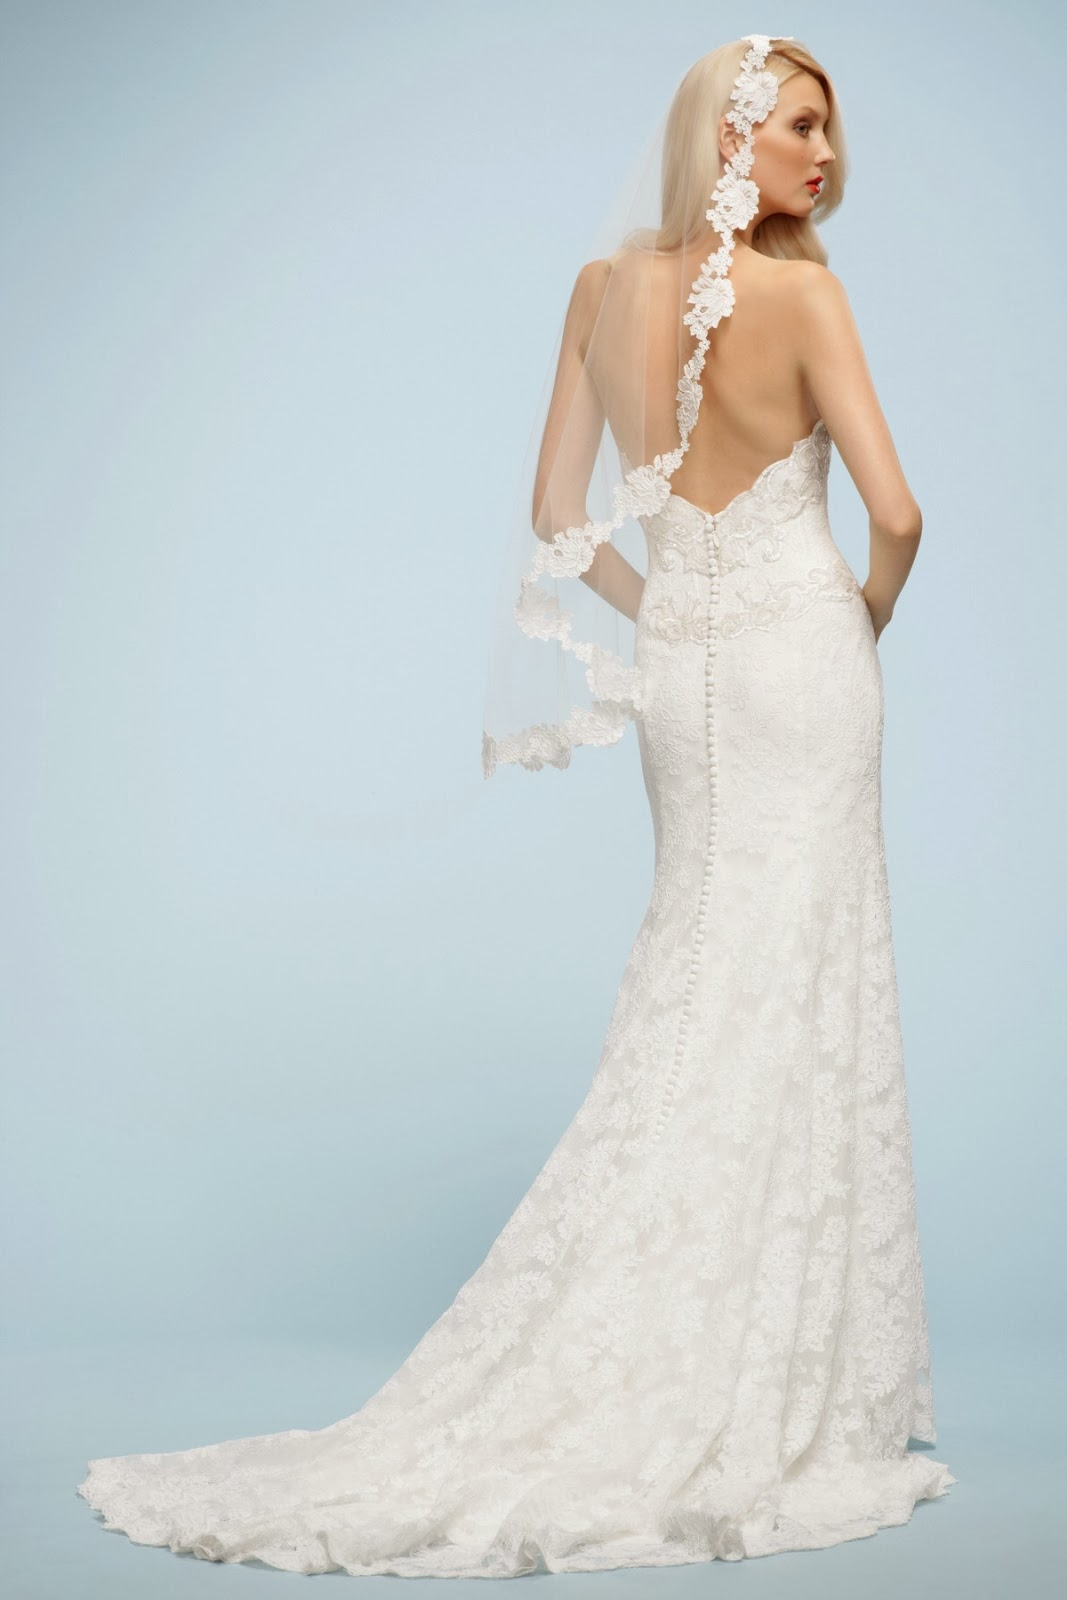 Link Camp Wedding Dress Collection 2013 21 Expensive